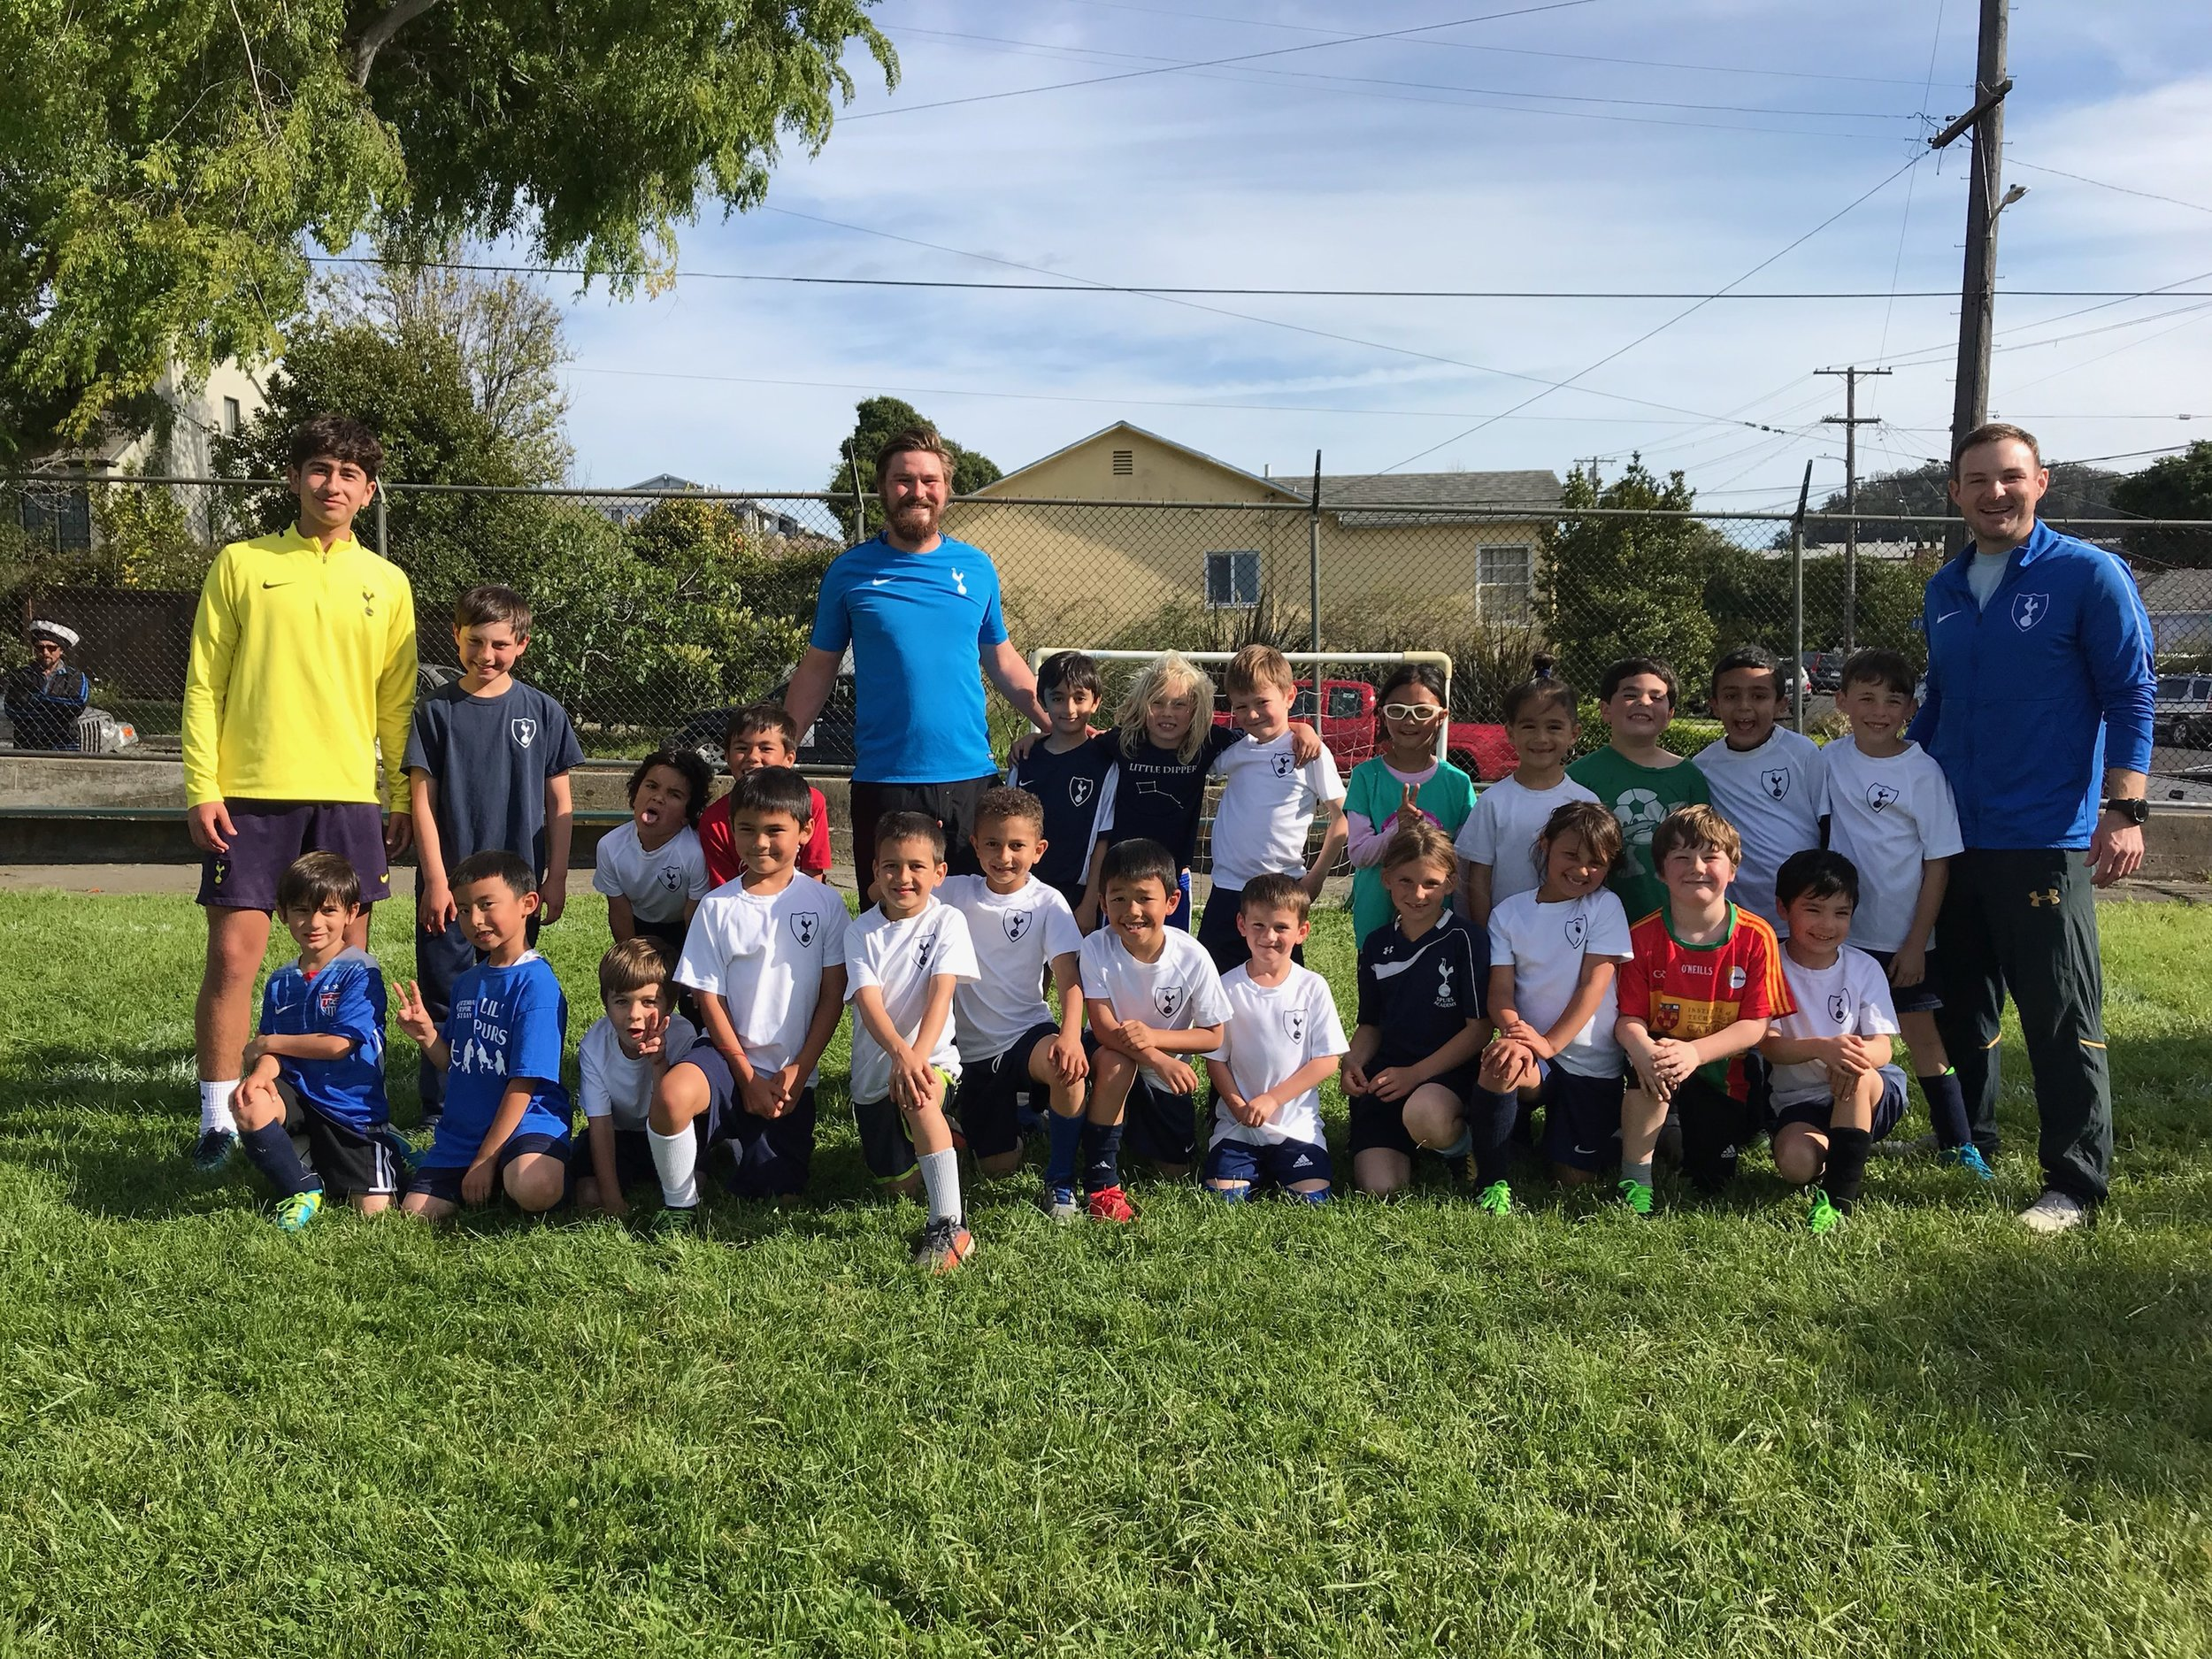 Pre-Comp Soccer - Pre-Competitive youth soccer is a mix of recreational and competitive soccer that has the objective of preparing recreational players for a successful transition to competitive soccer.